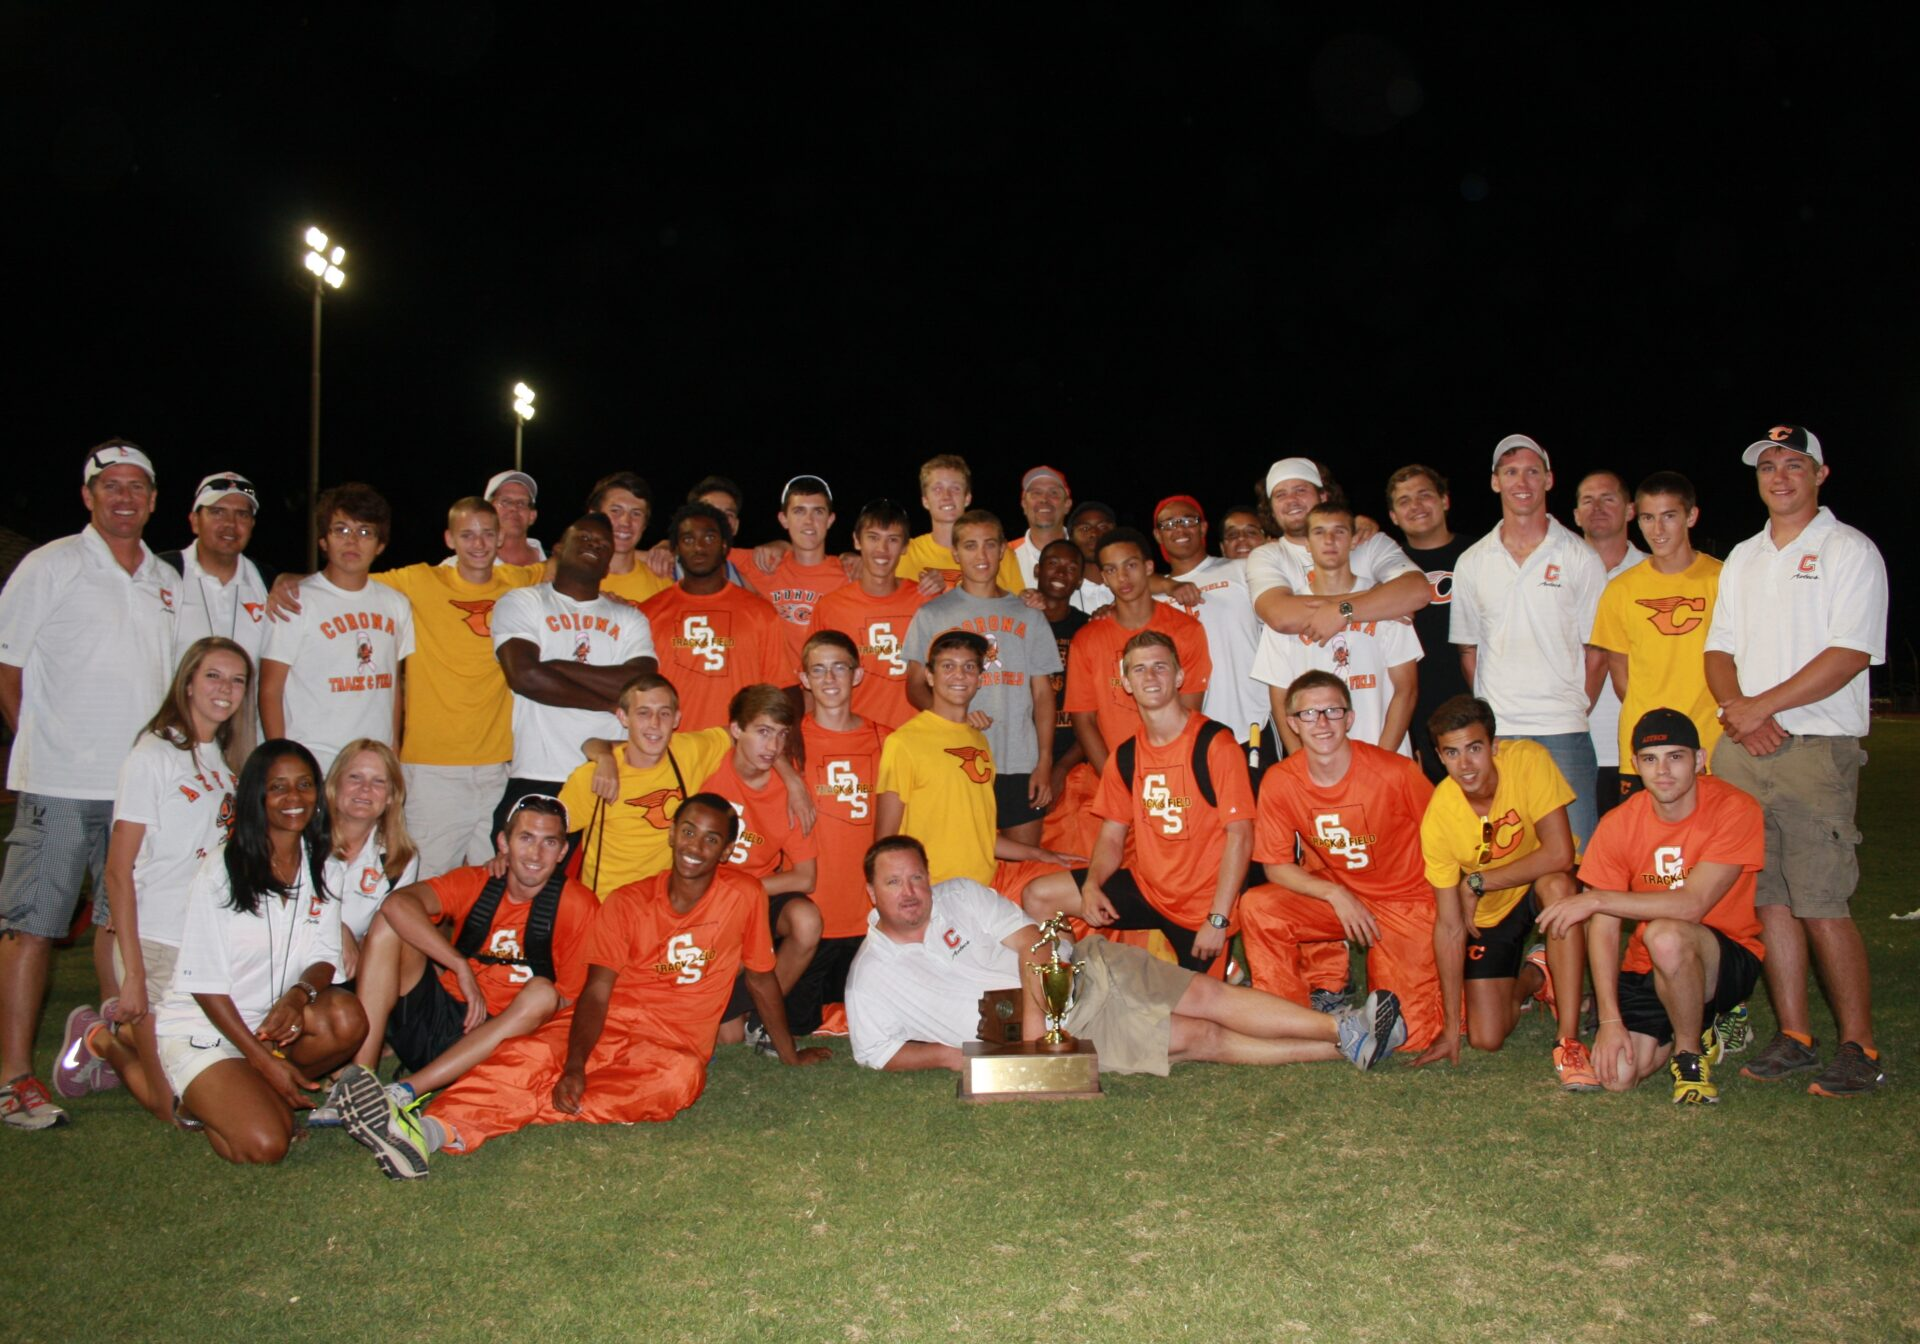 Stellar year for Corona track as boys place 2nd in state